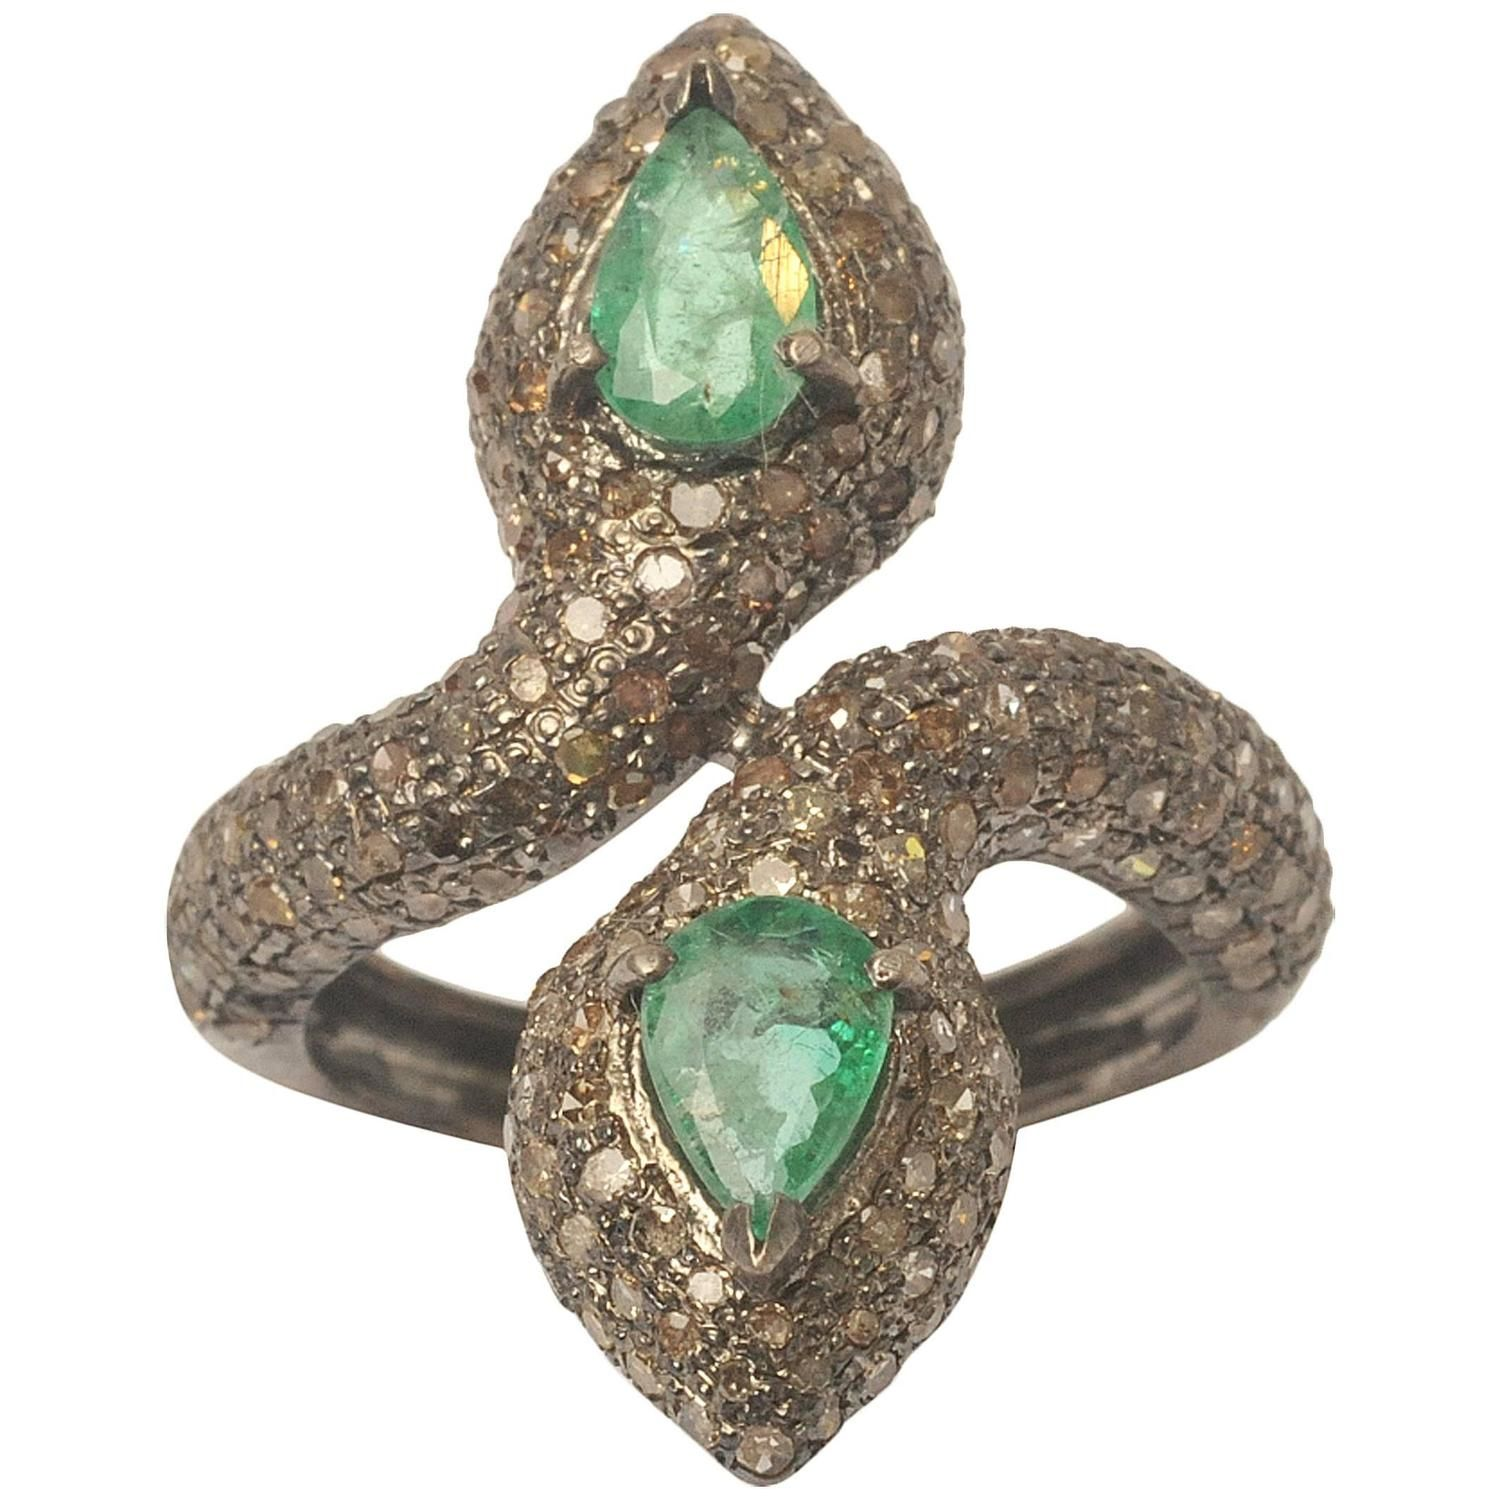 heat emerald s ring may green co mays treated brilliant jeff johnson birthstone